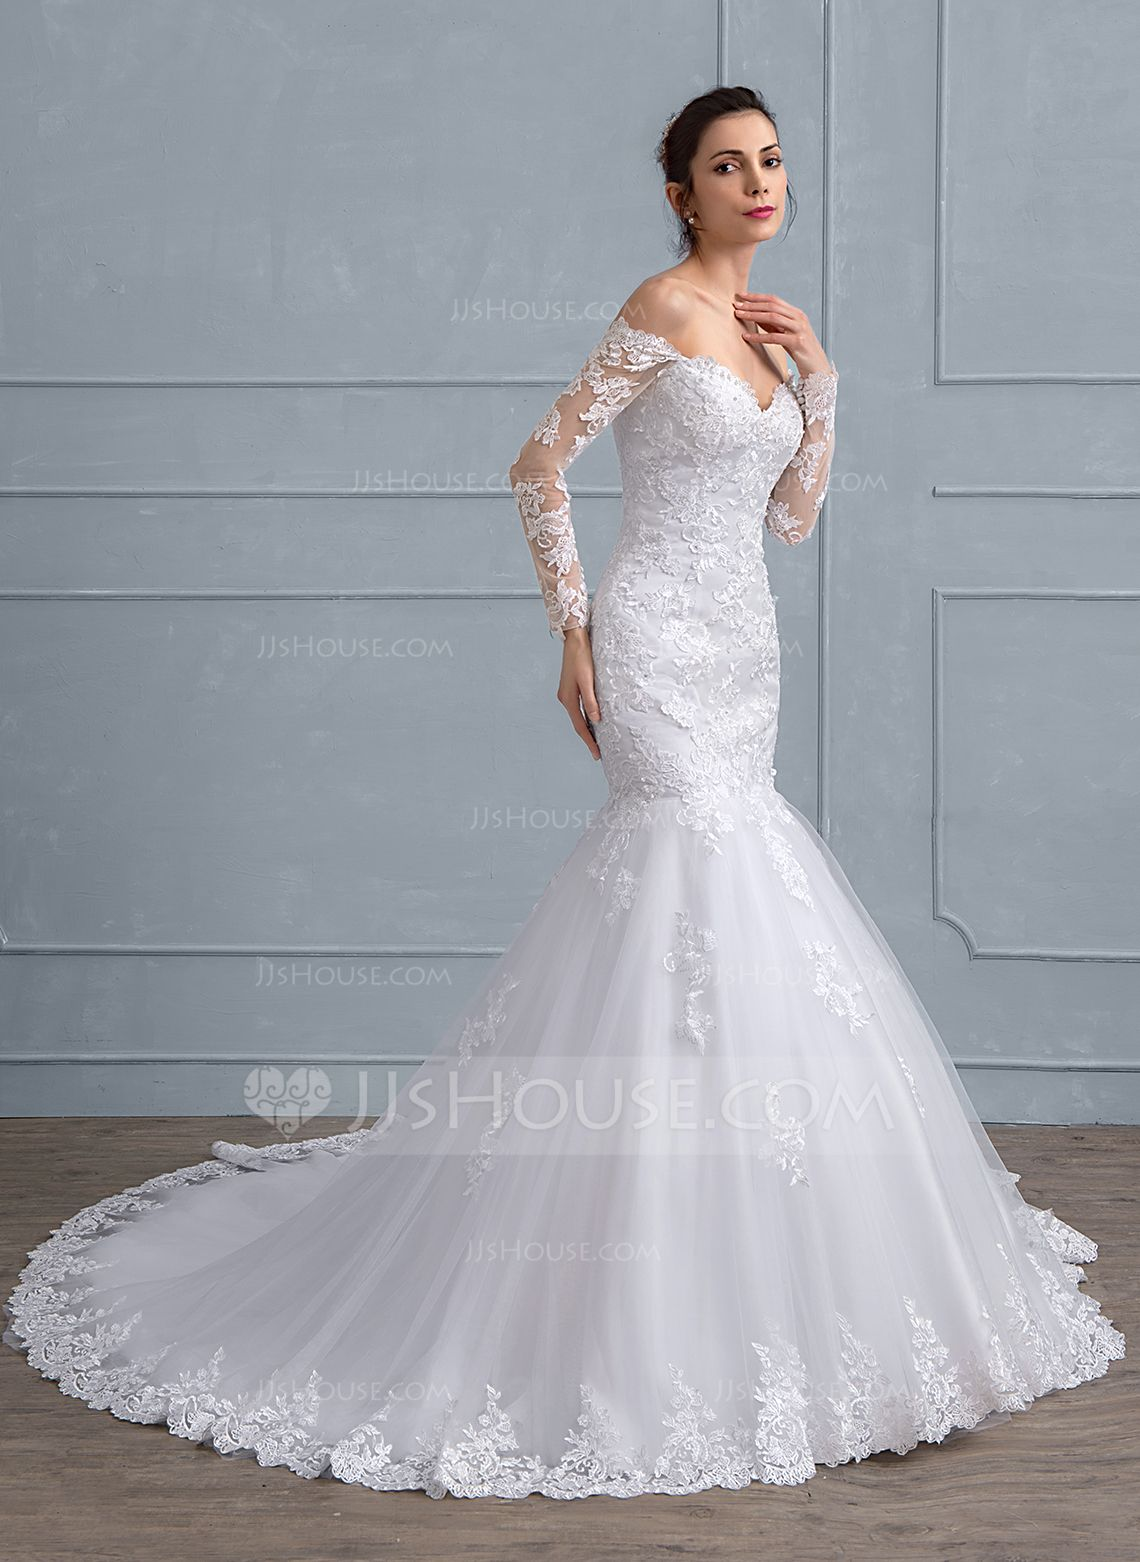 Us 298 00 Trumpet Mermaid Off The Shoulder Chapel Train Tulle Lace Wedding Dress With Beading Sequins Jj S House Wedding Dresses Top Wedding Dresses Wedding Dresses Lace [ 1562 x 1140 Pixel ]